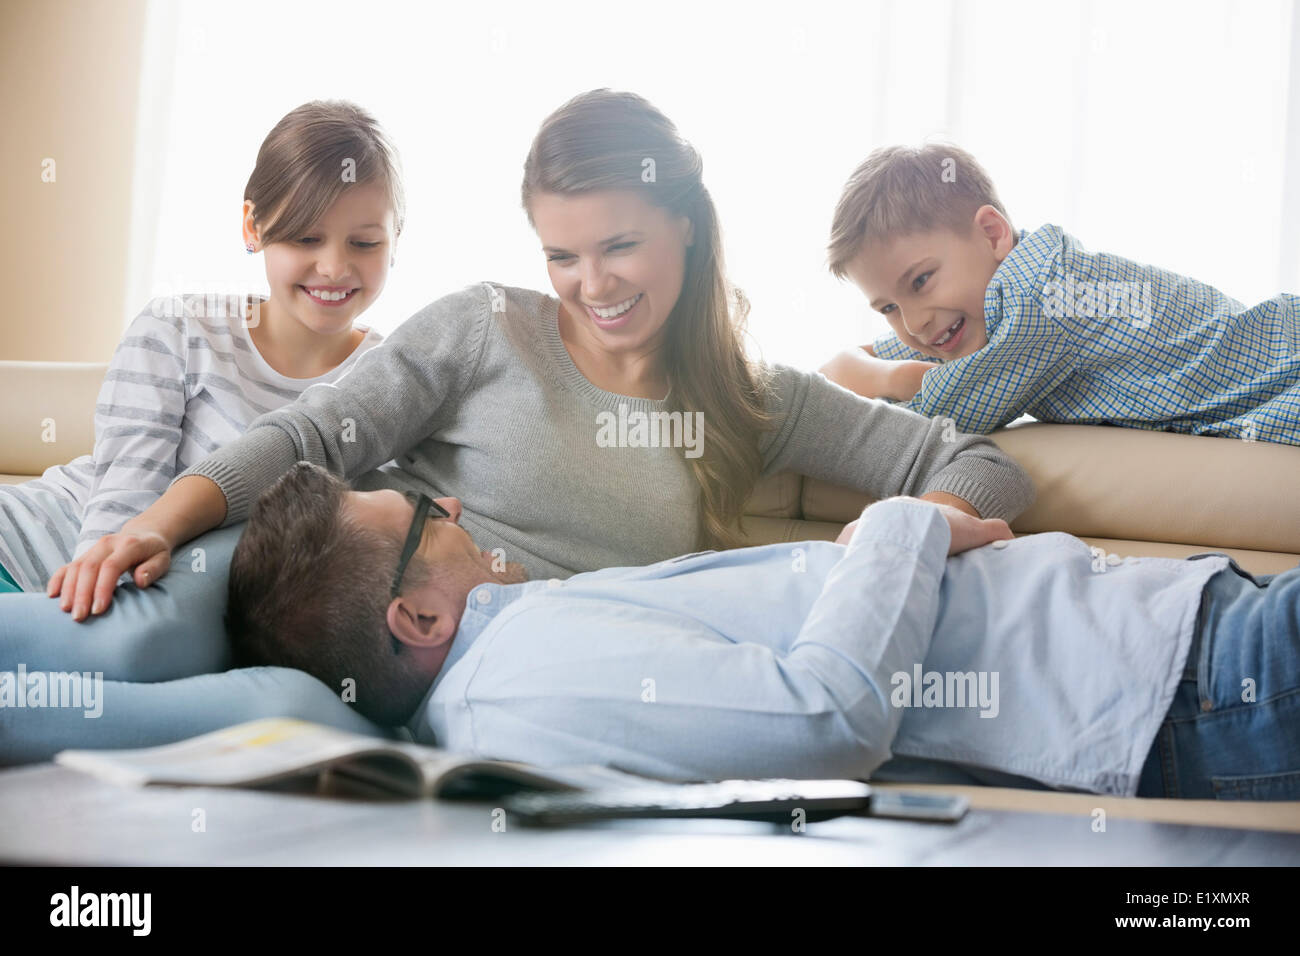 Happy Family in living room Photo Stock